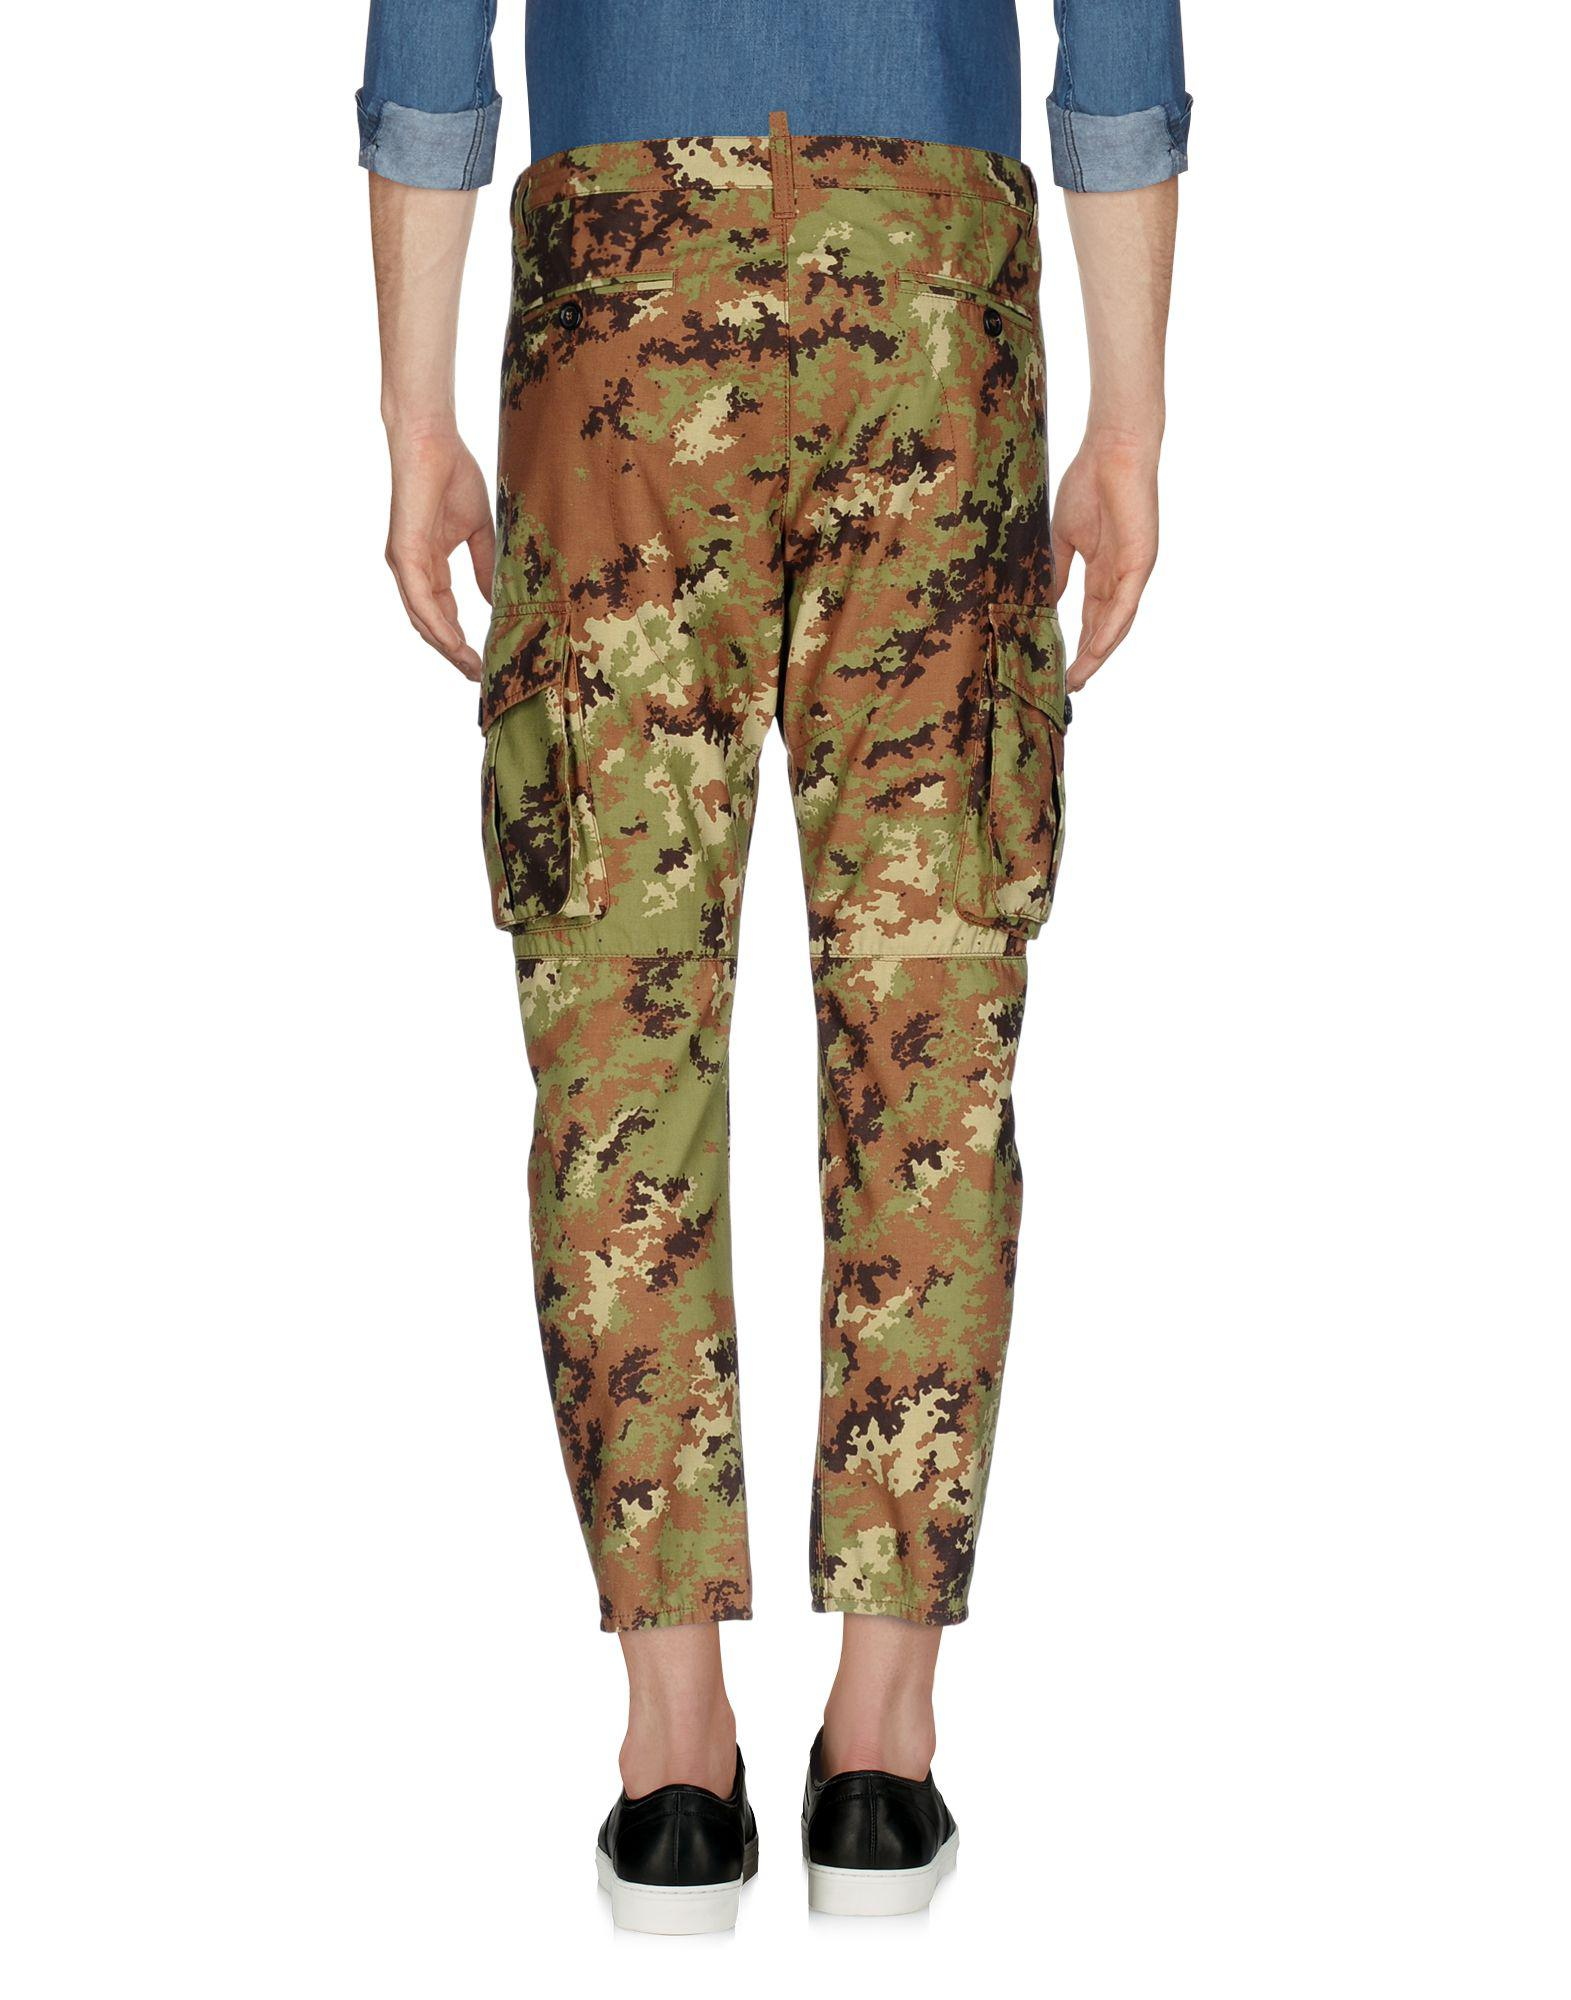 DSquared² Synthetic Casual Pants in Military Green (Green) for Men